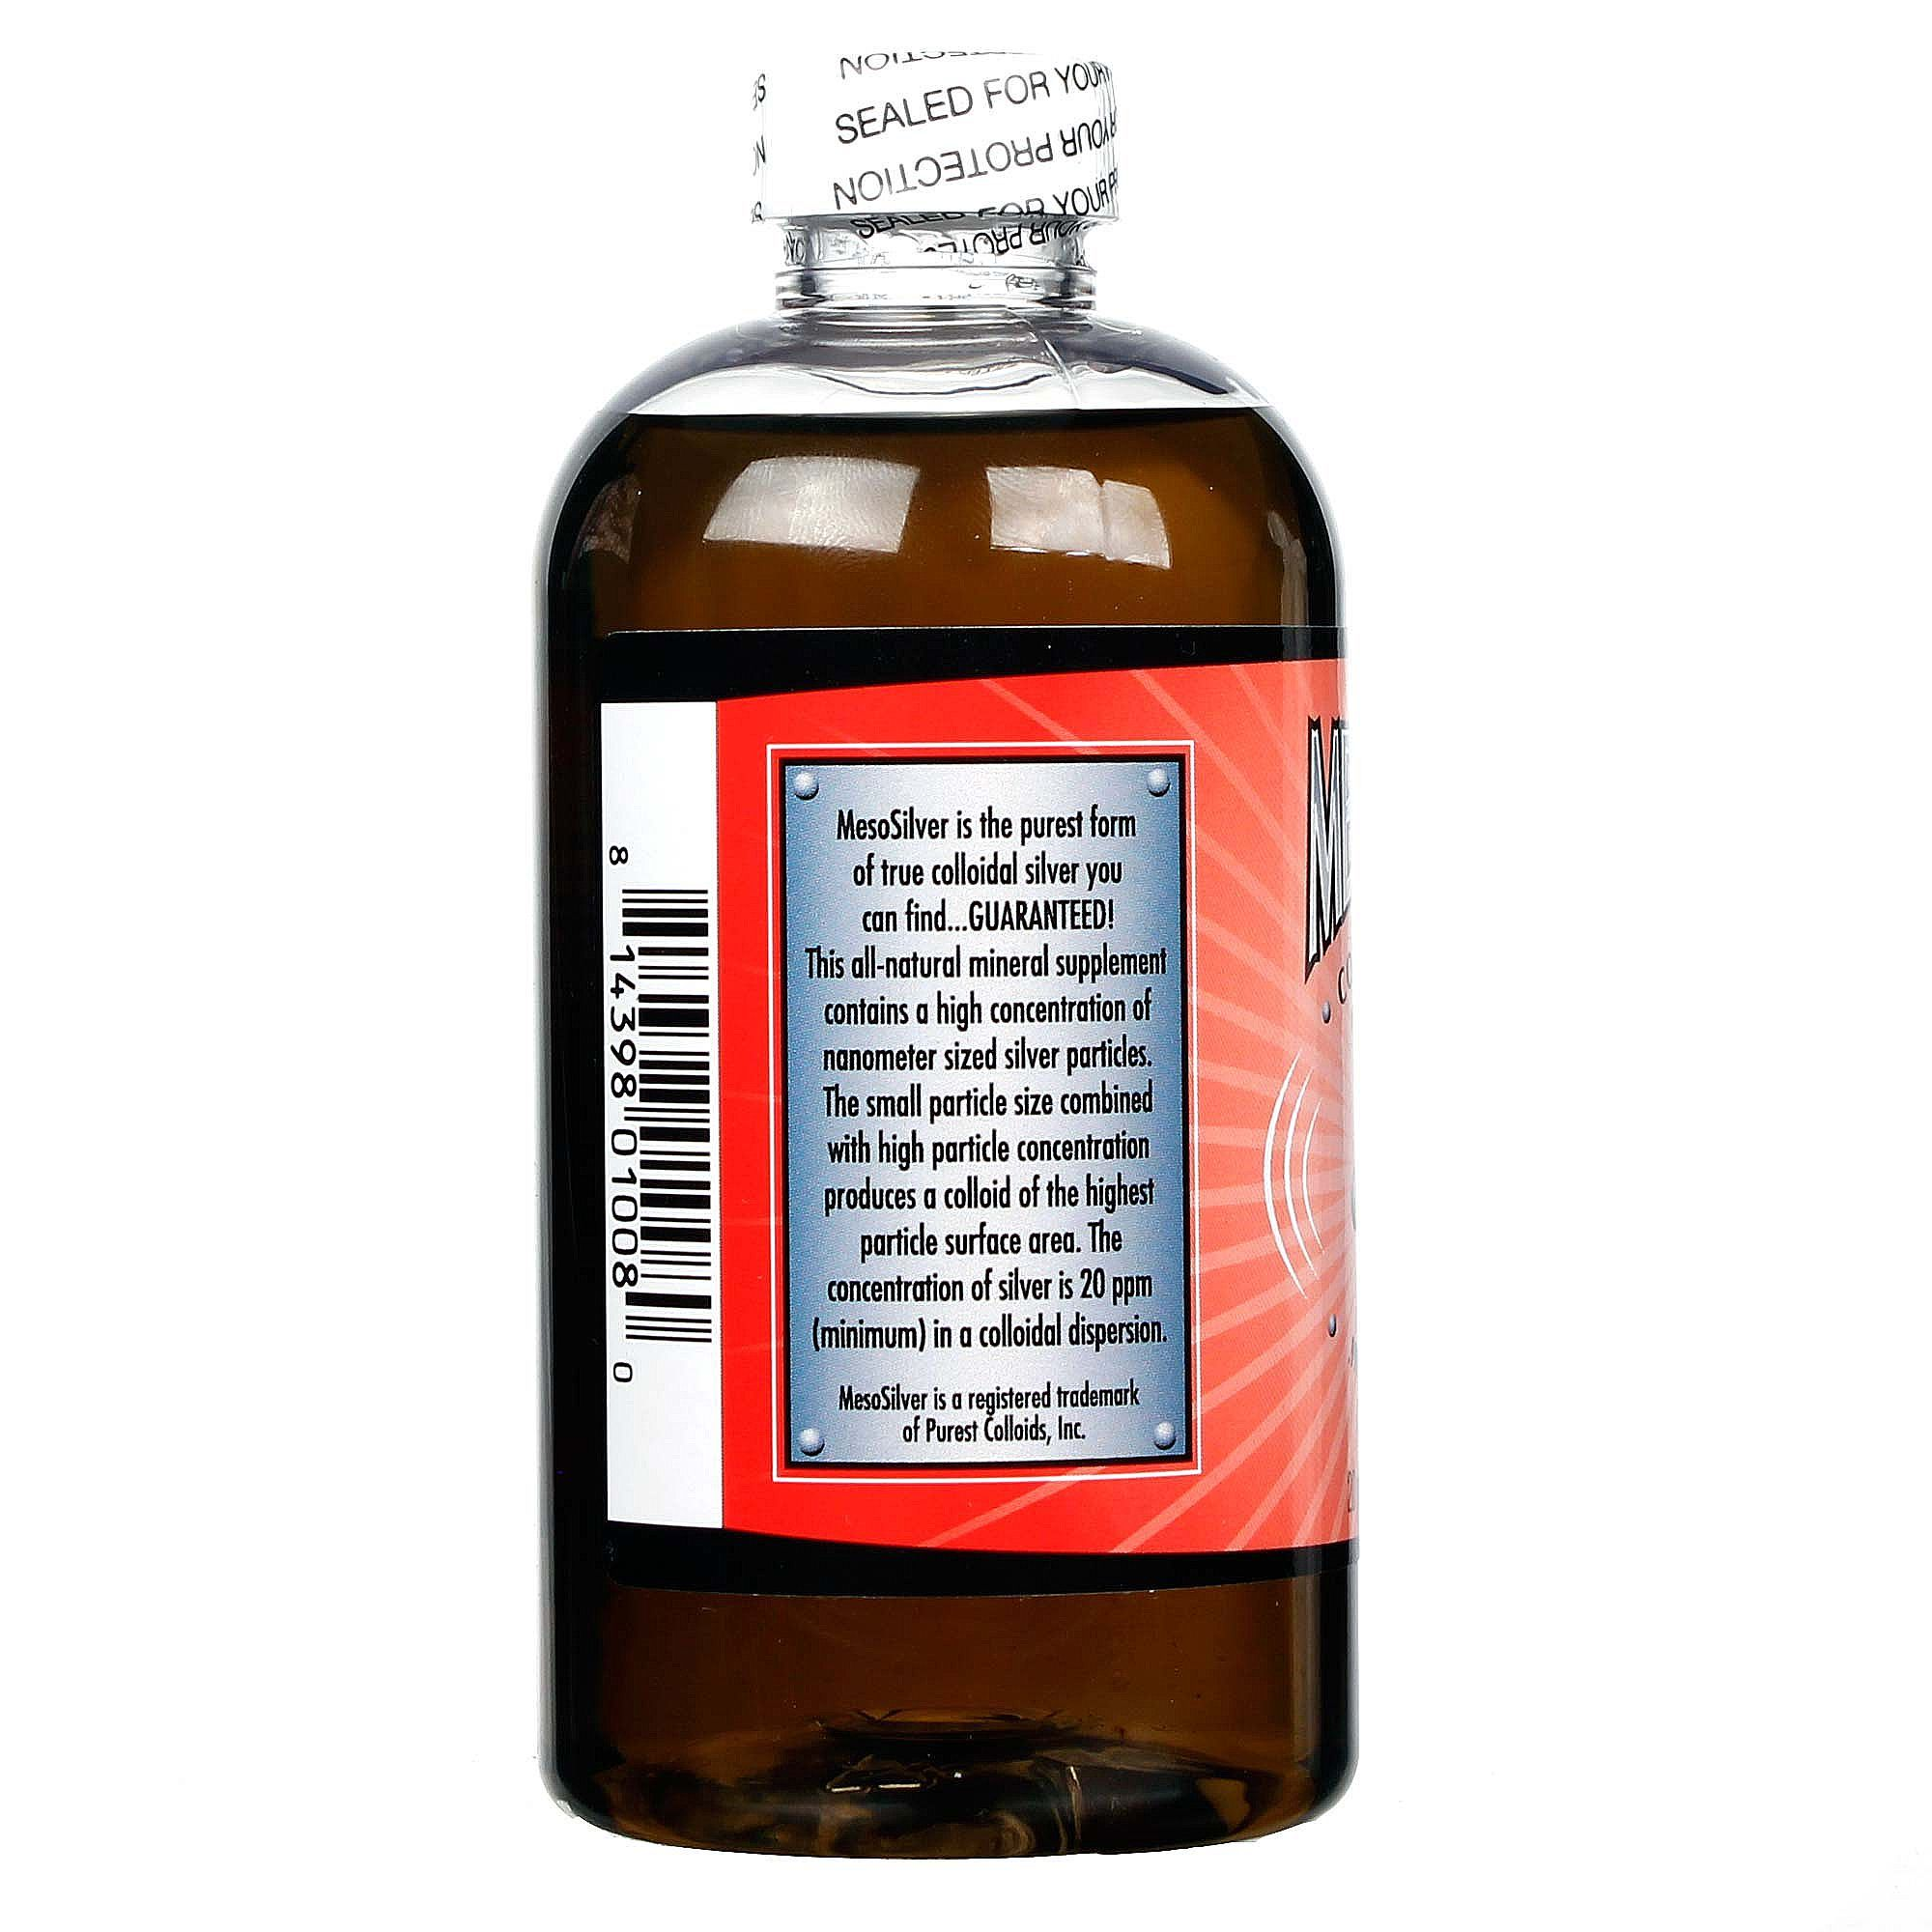 colloidal silver natural immune strength mineral supplement kills infection fast MesoSilver